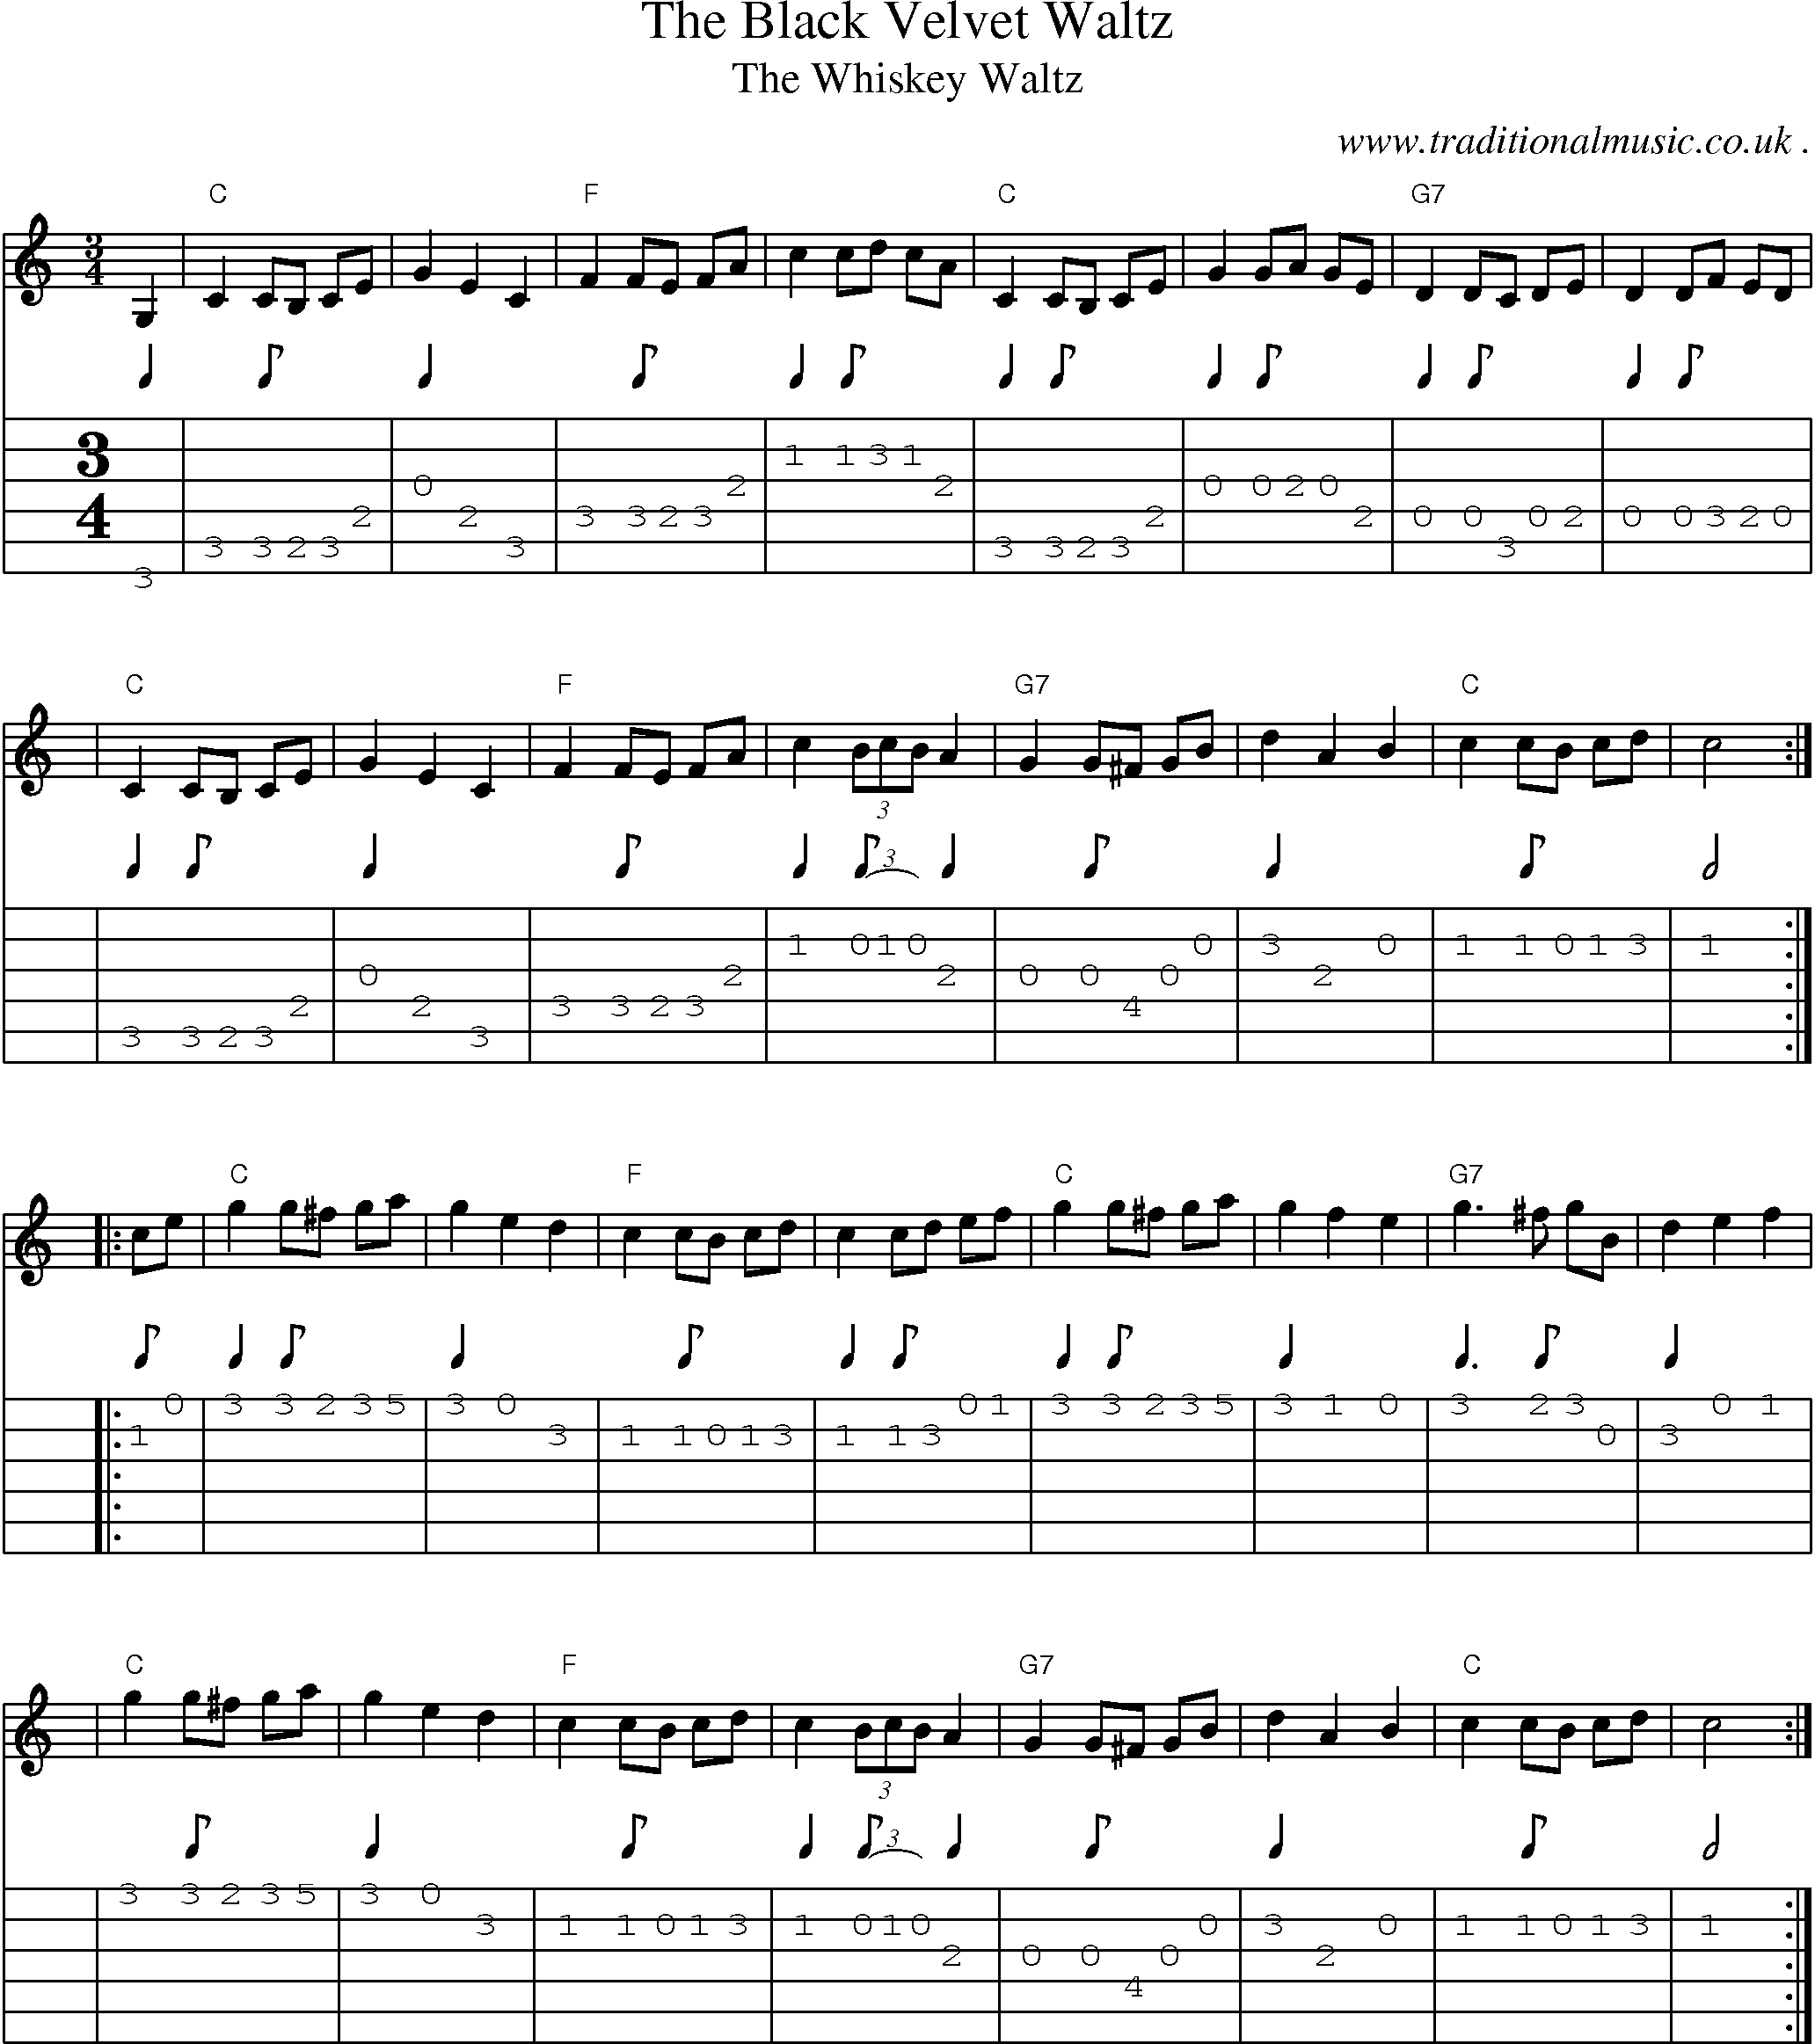 American Old Time Music Scores And Tabs For Guitar The Black